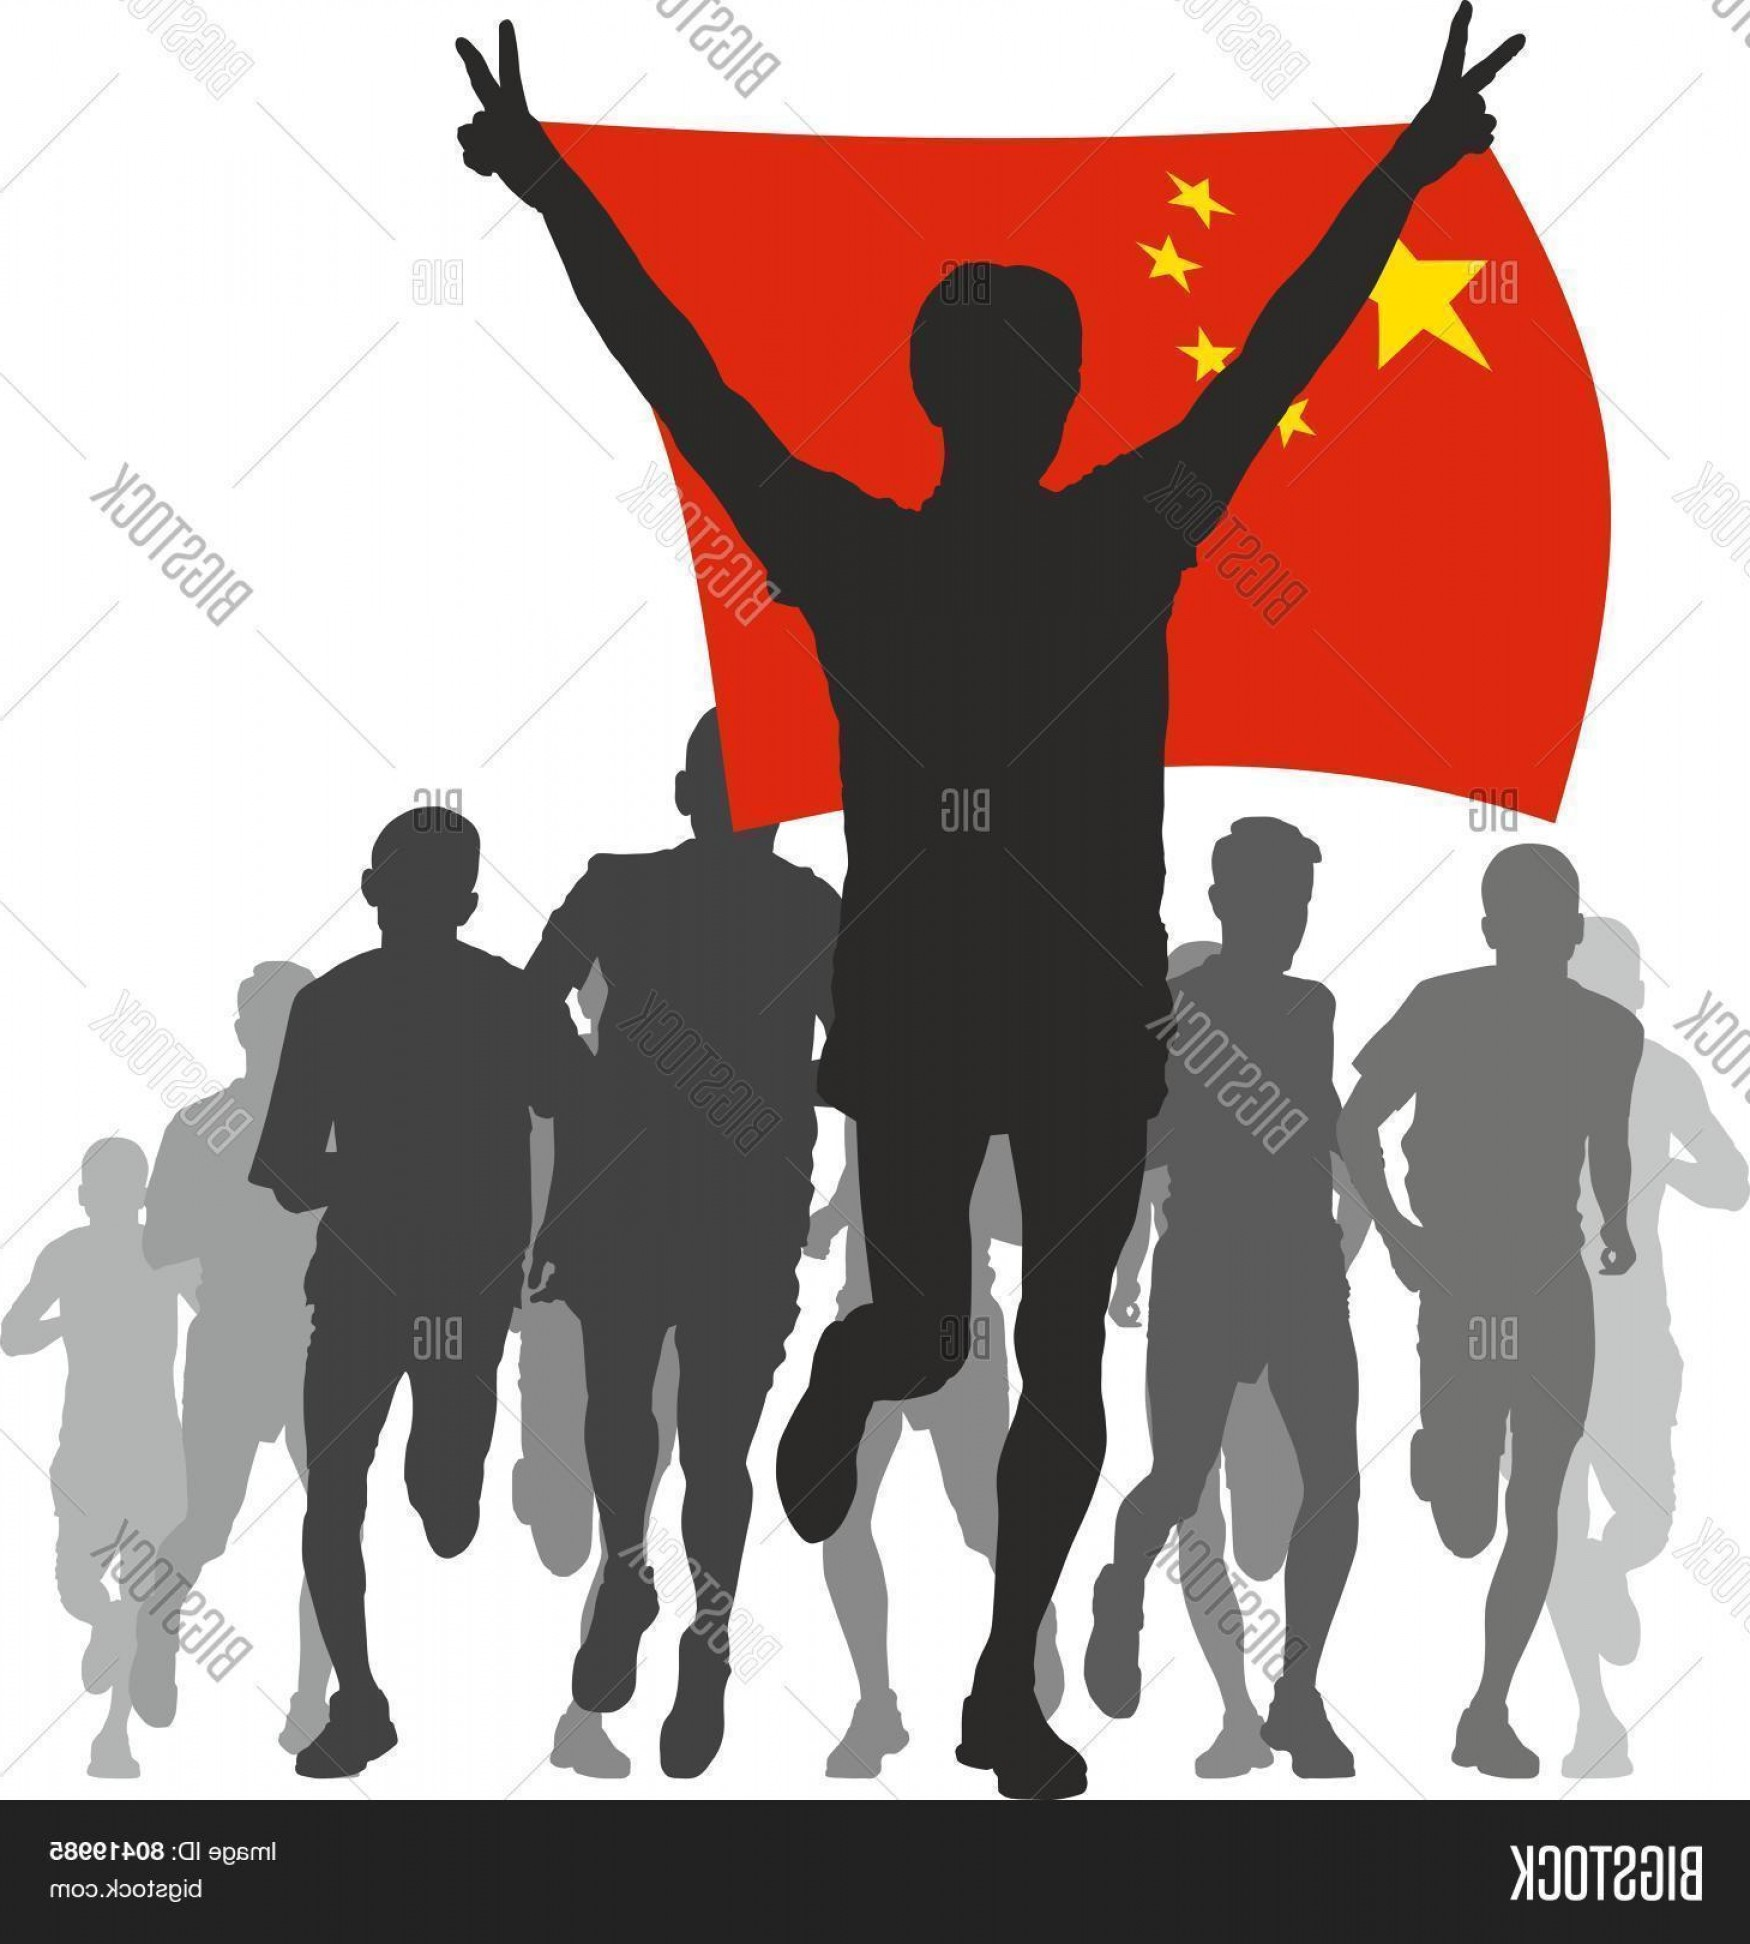 Color Guard Silhouette Vector: Stock Vector Winner With Thechina Flag At The Finish